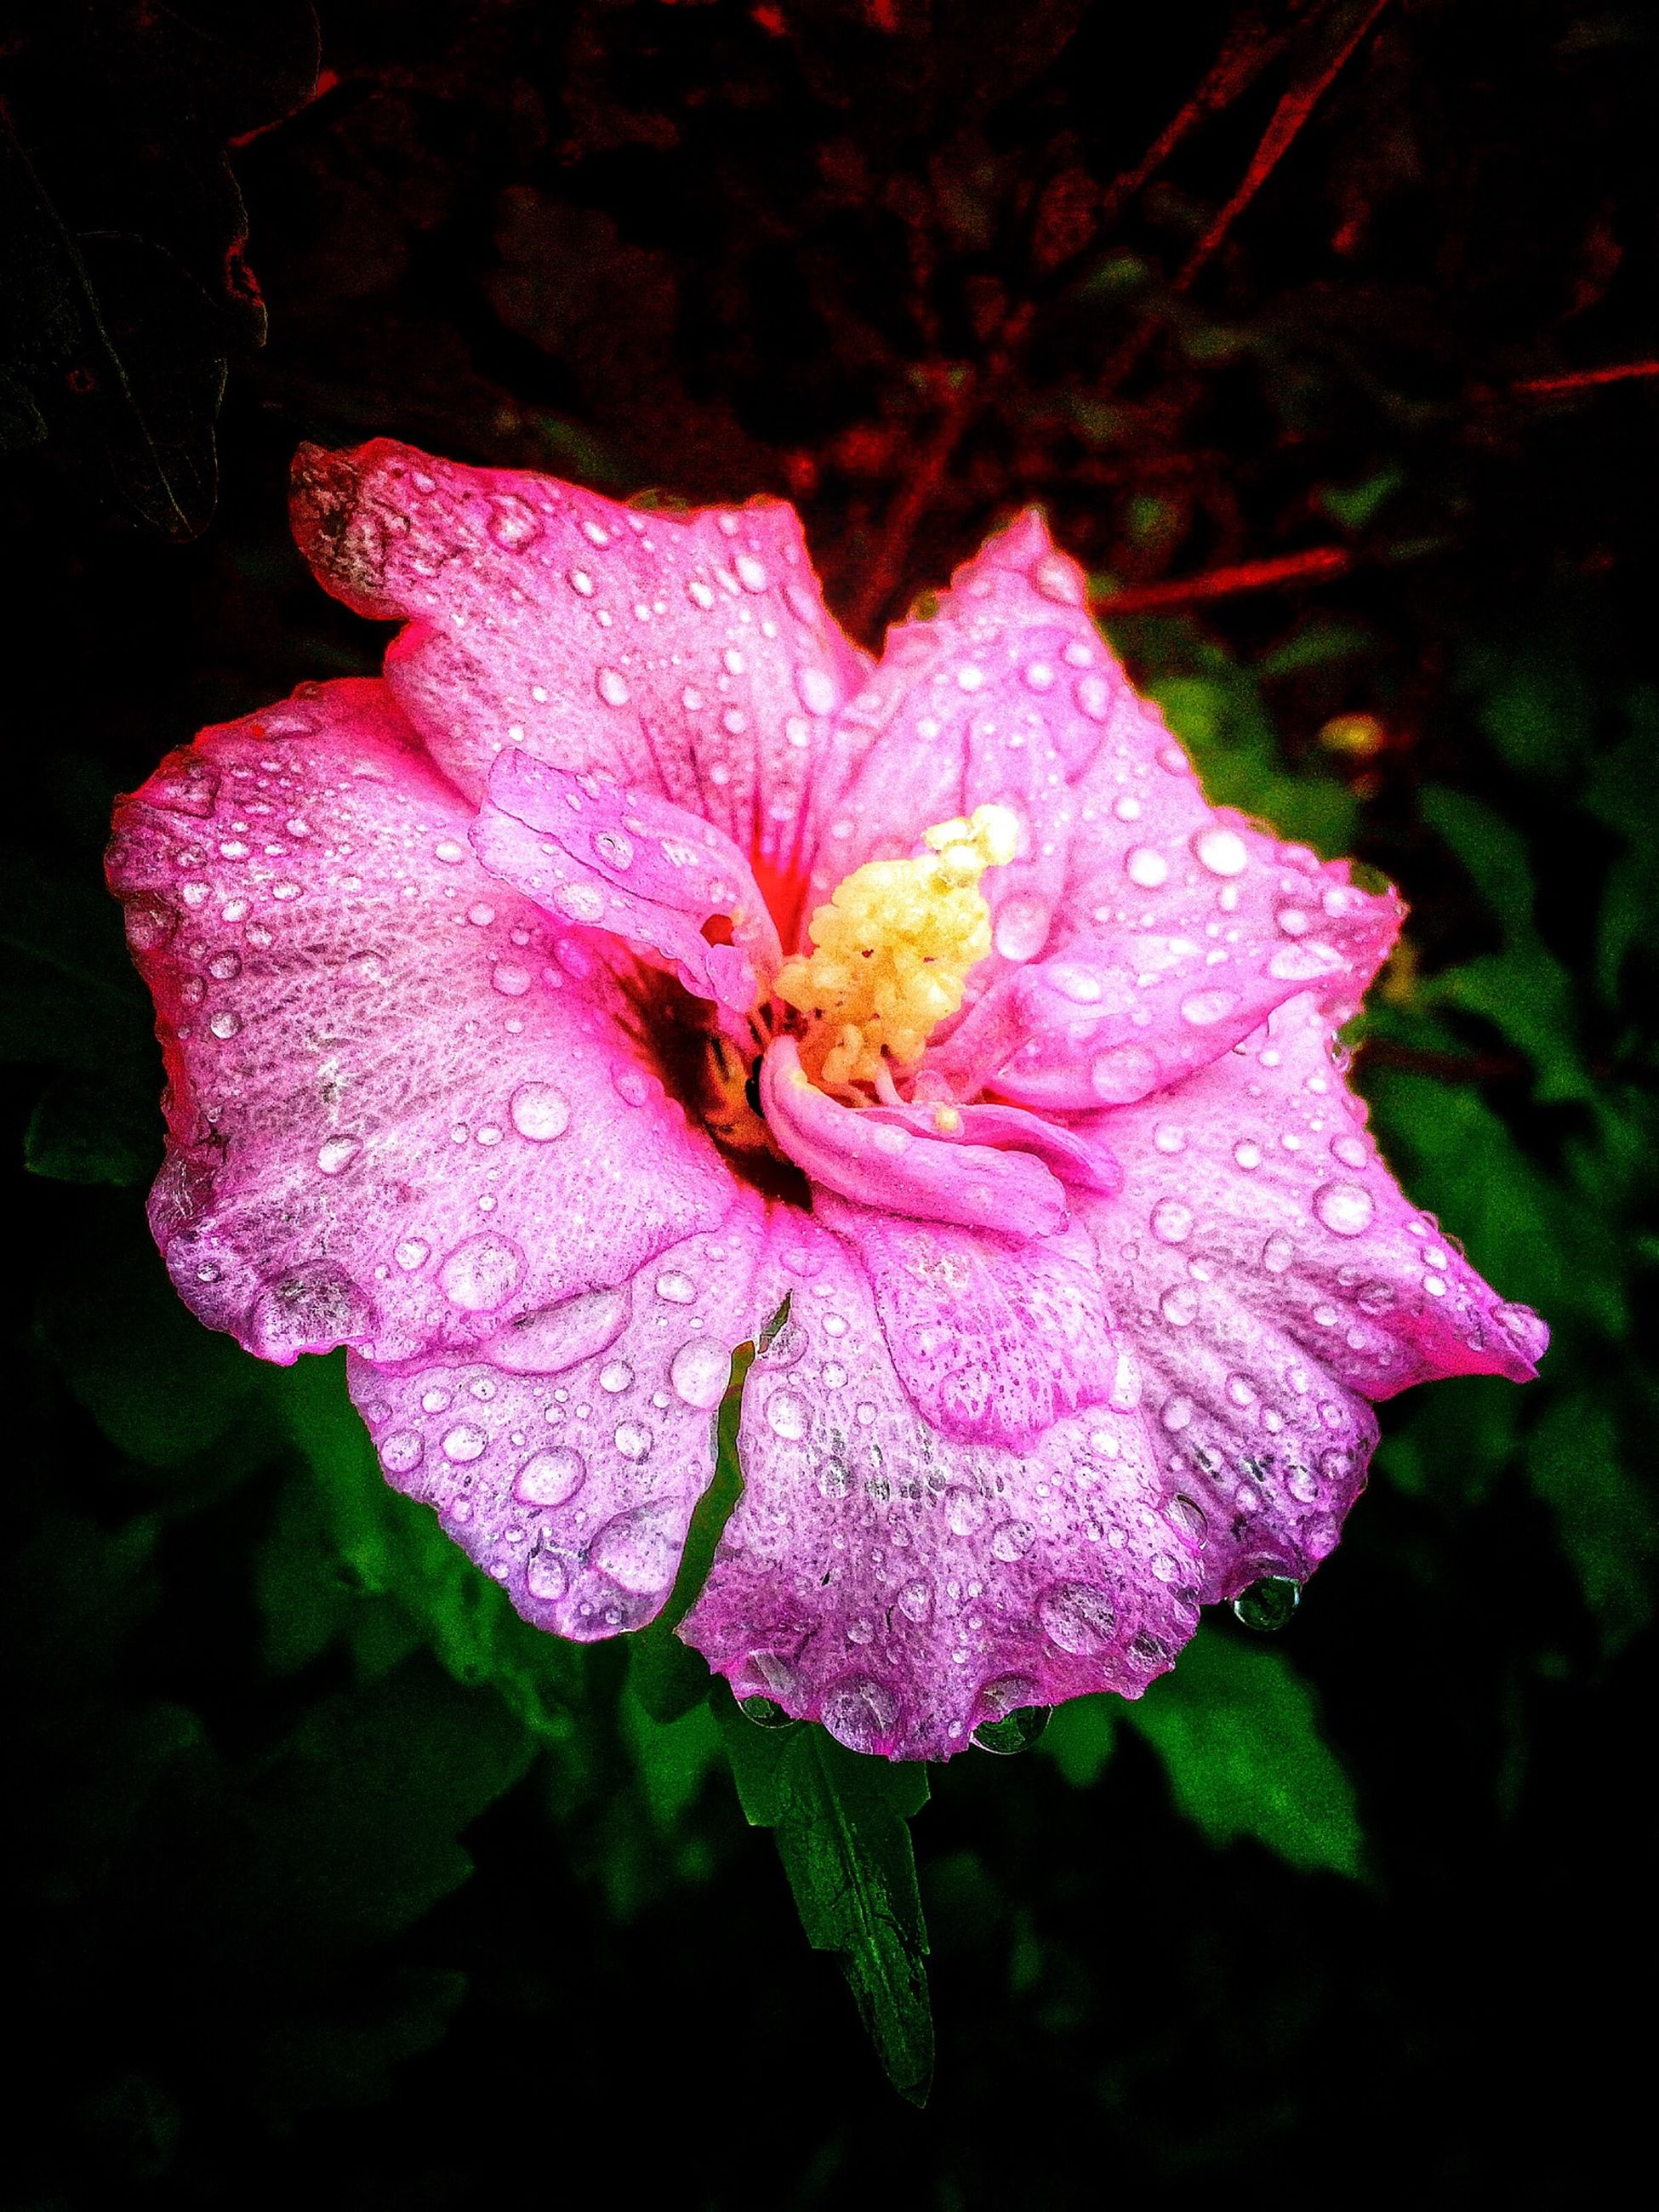 flower, petal, freshness, flower head, fragility, growth, close-up, beauty in nature, single flower, pink color, nature, blooming, drop, in bloom, plant, wet, purple, focus on foreground, stamen, no people